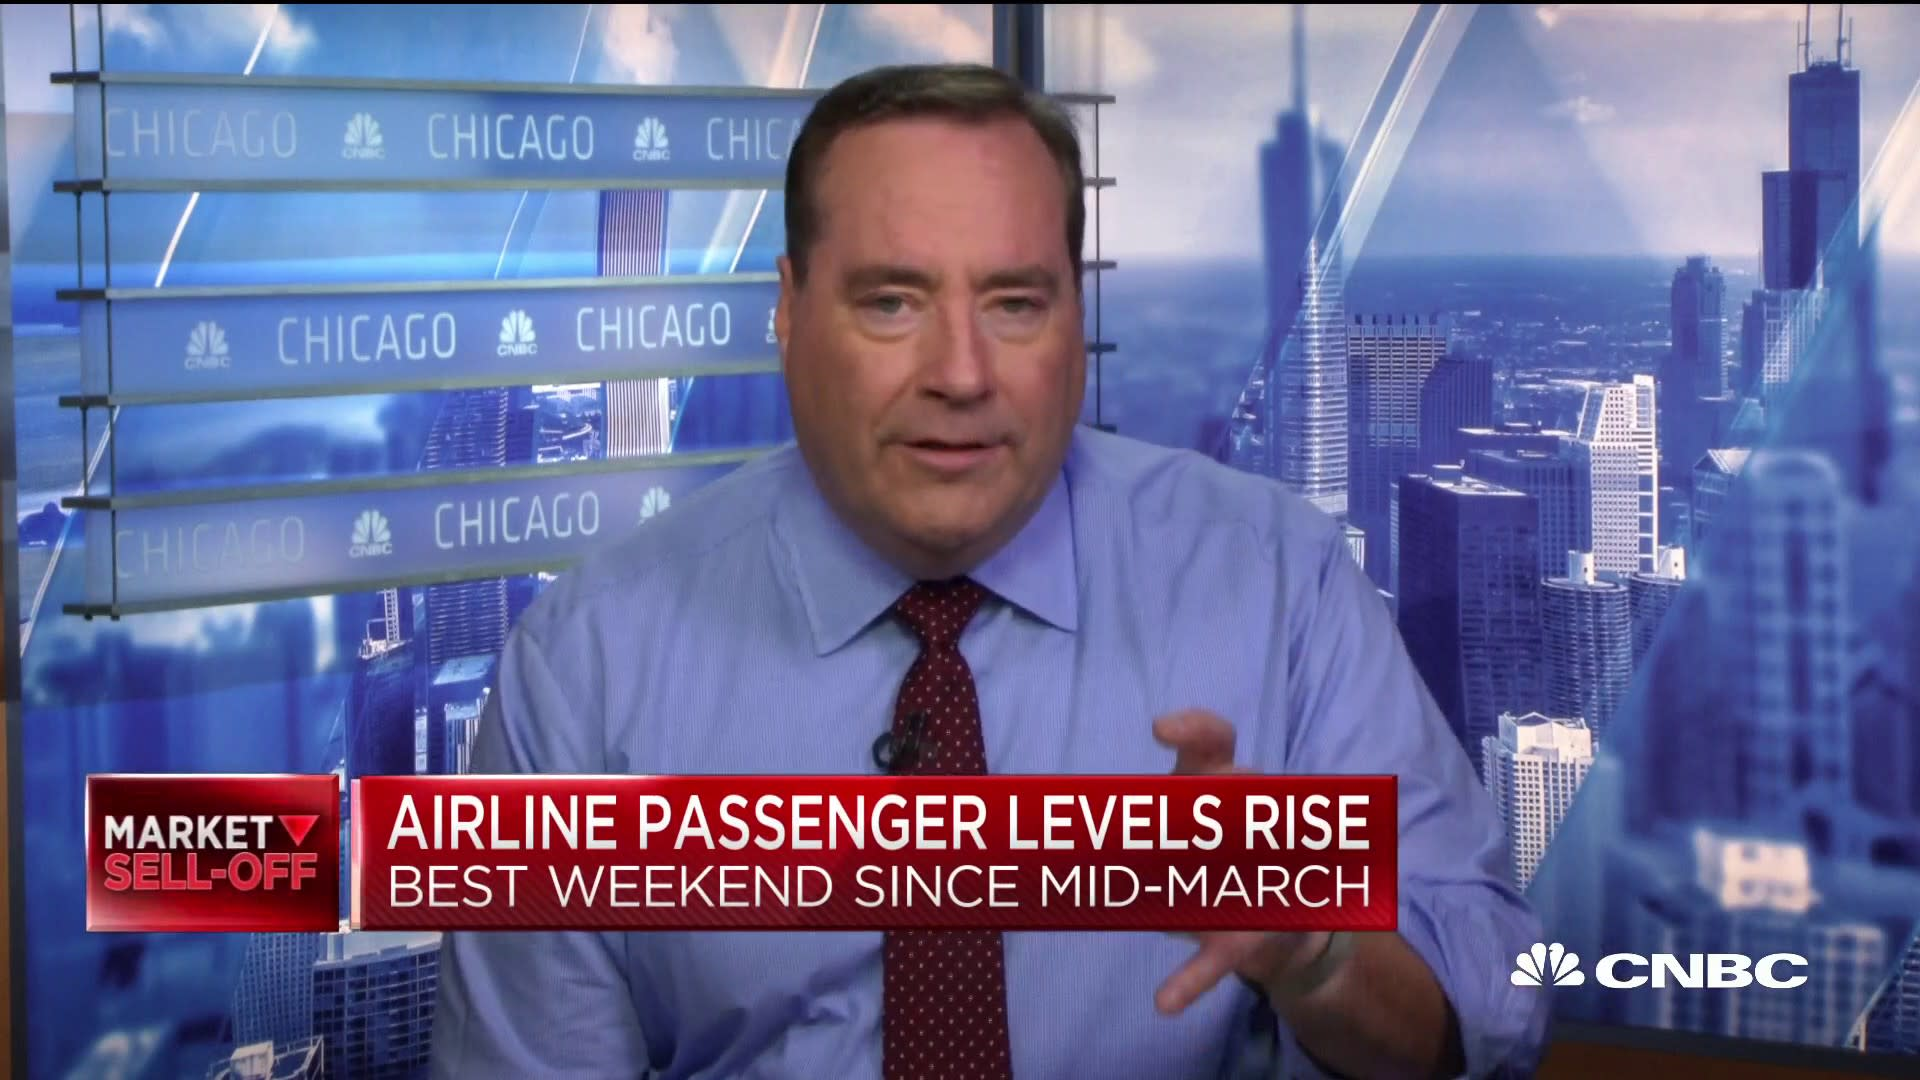 U.S. airlines see best weekend for passenger levels since mid-March